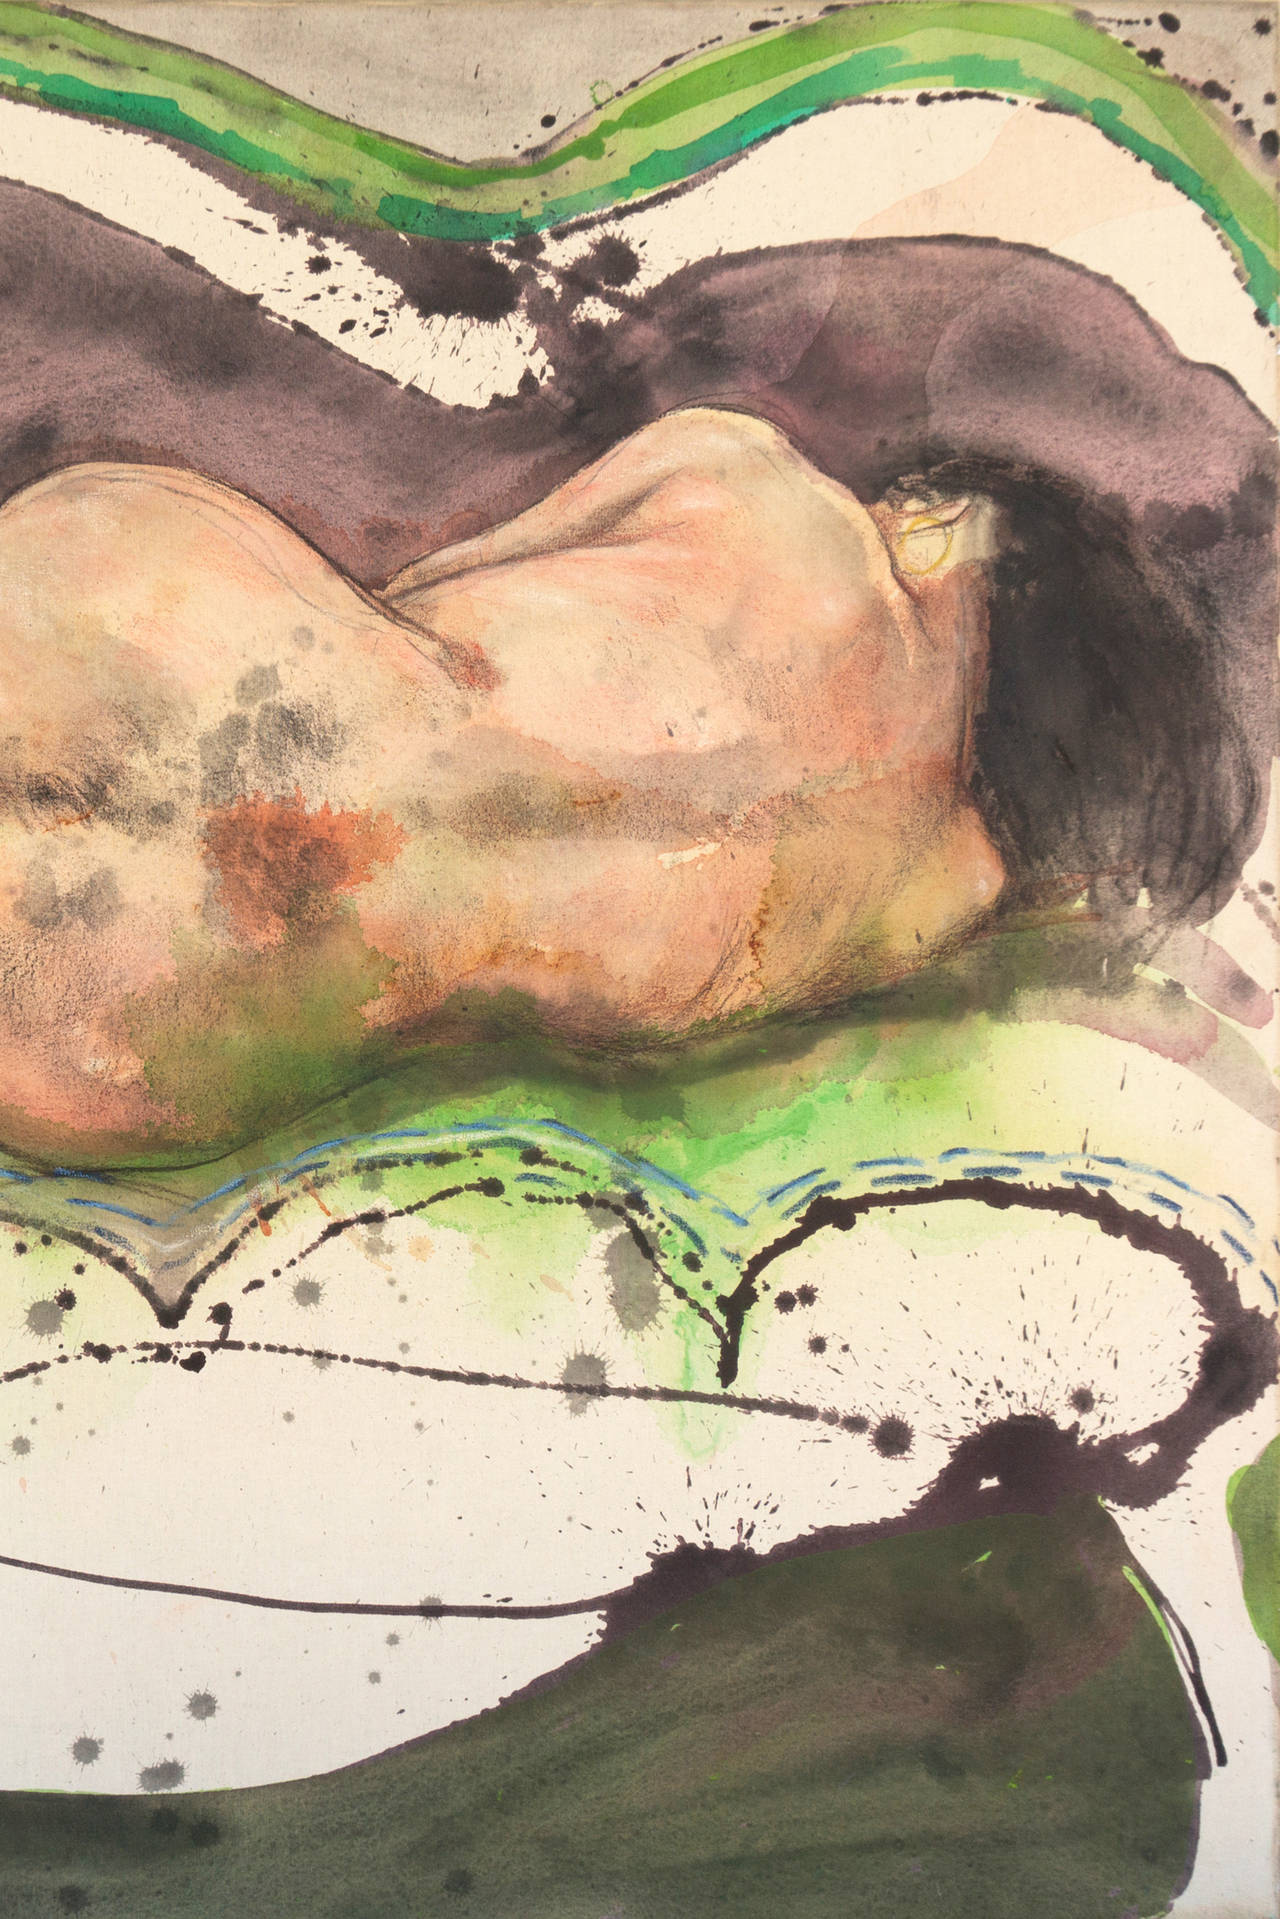 Mujer Dormida - Expressionist Painting by Julio Lavallen